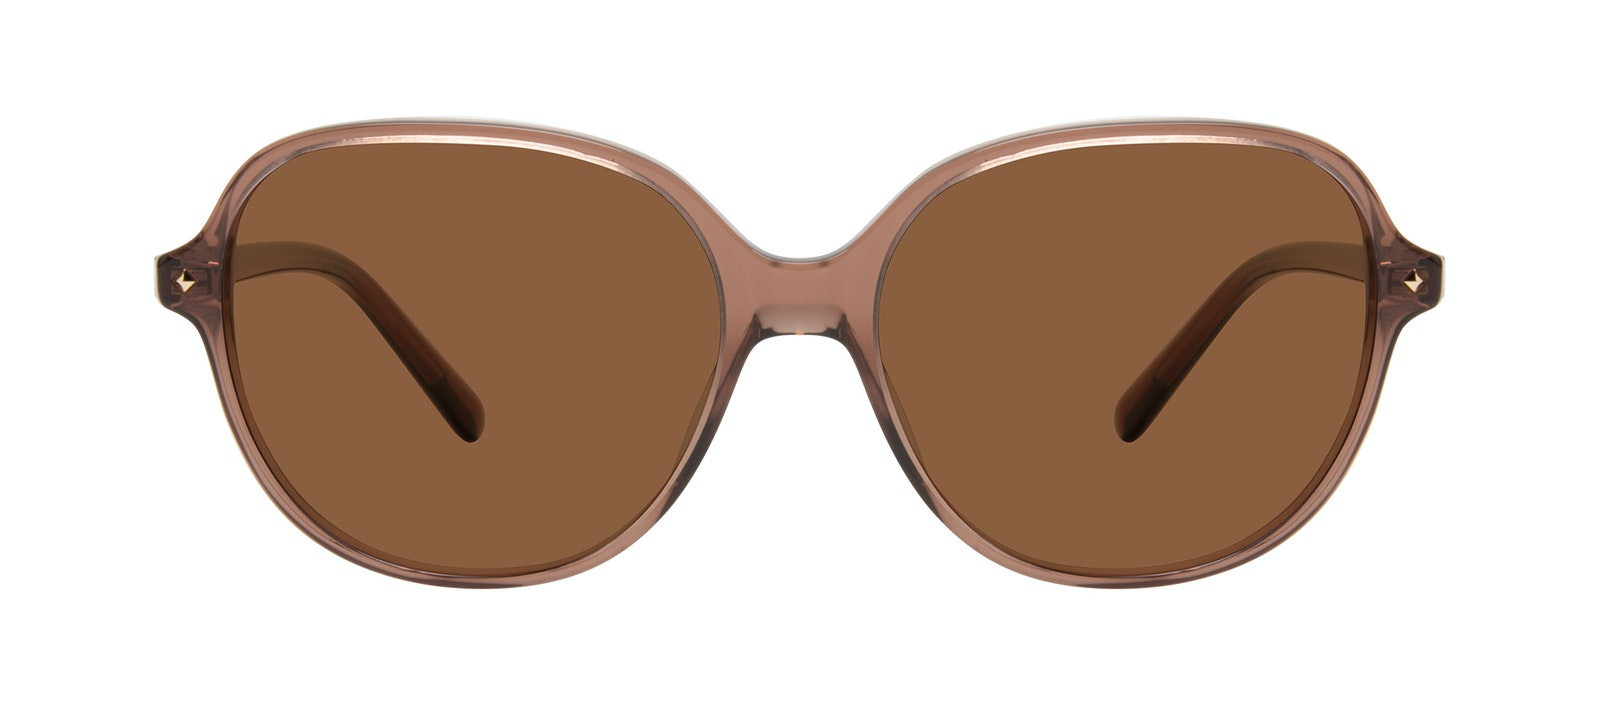 Affordable Fashion Glasses Round Sunglasses Women Covet Terra Front